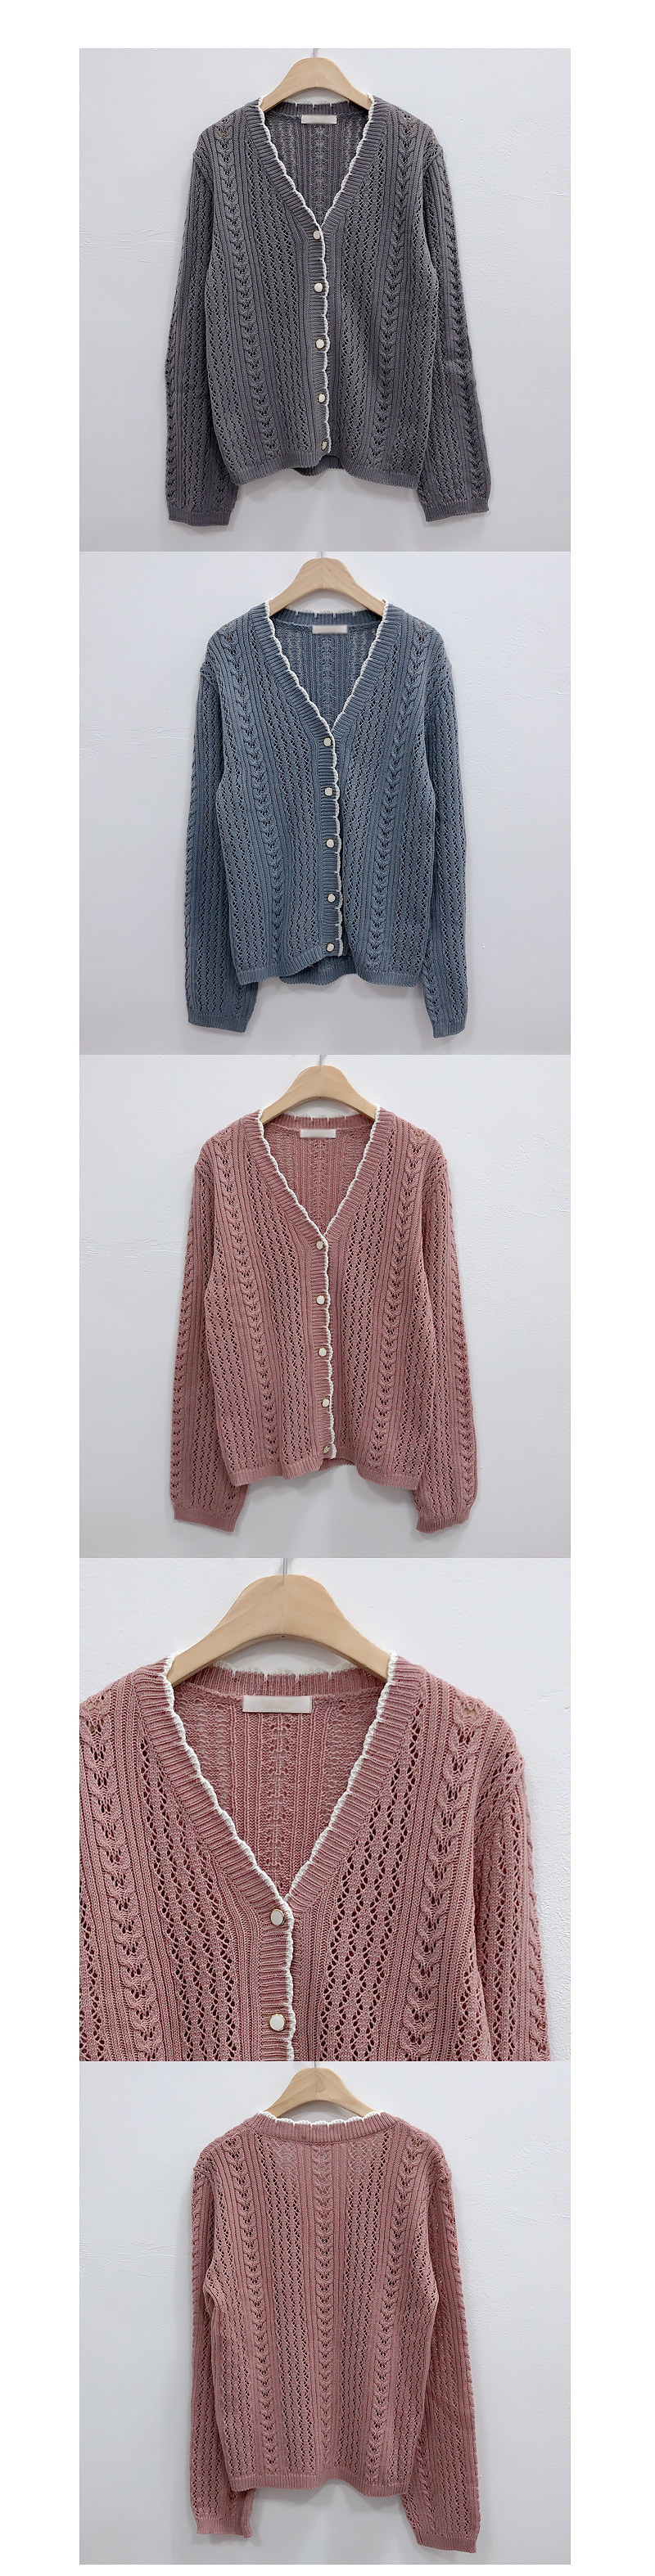 Cotton-cotton color twill knit cardigan